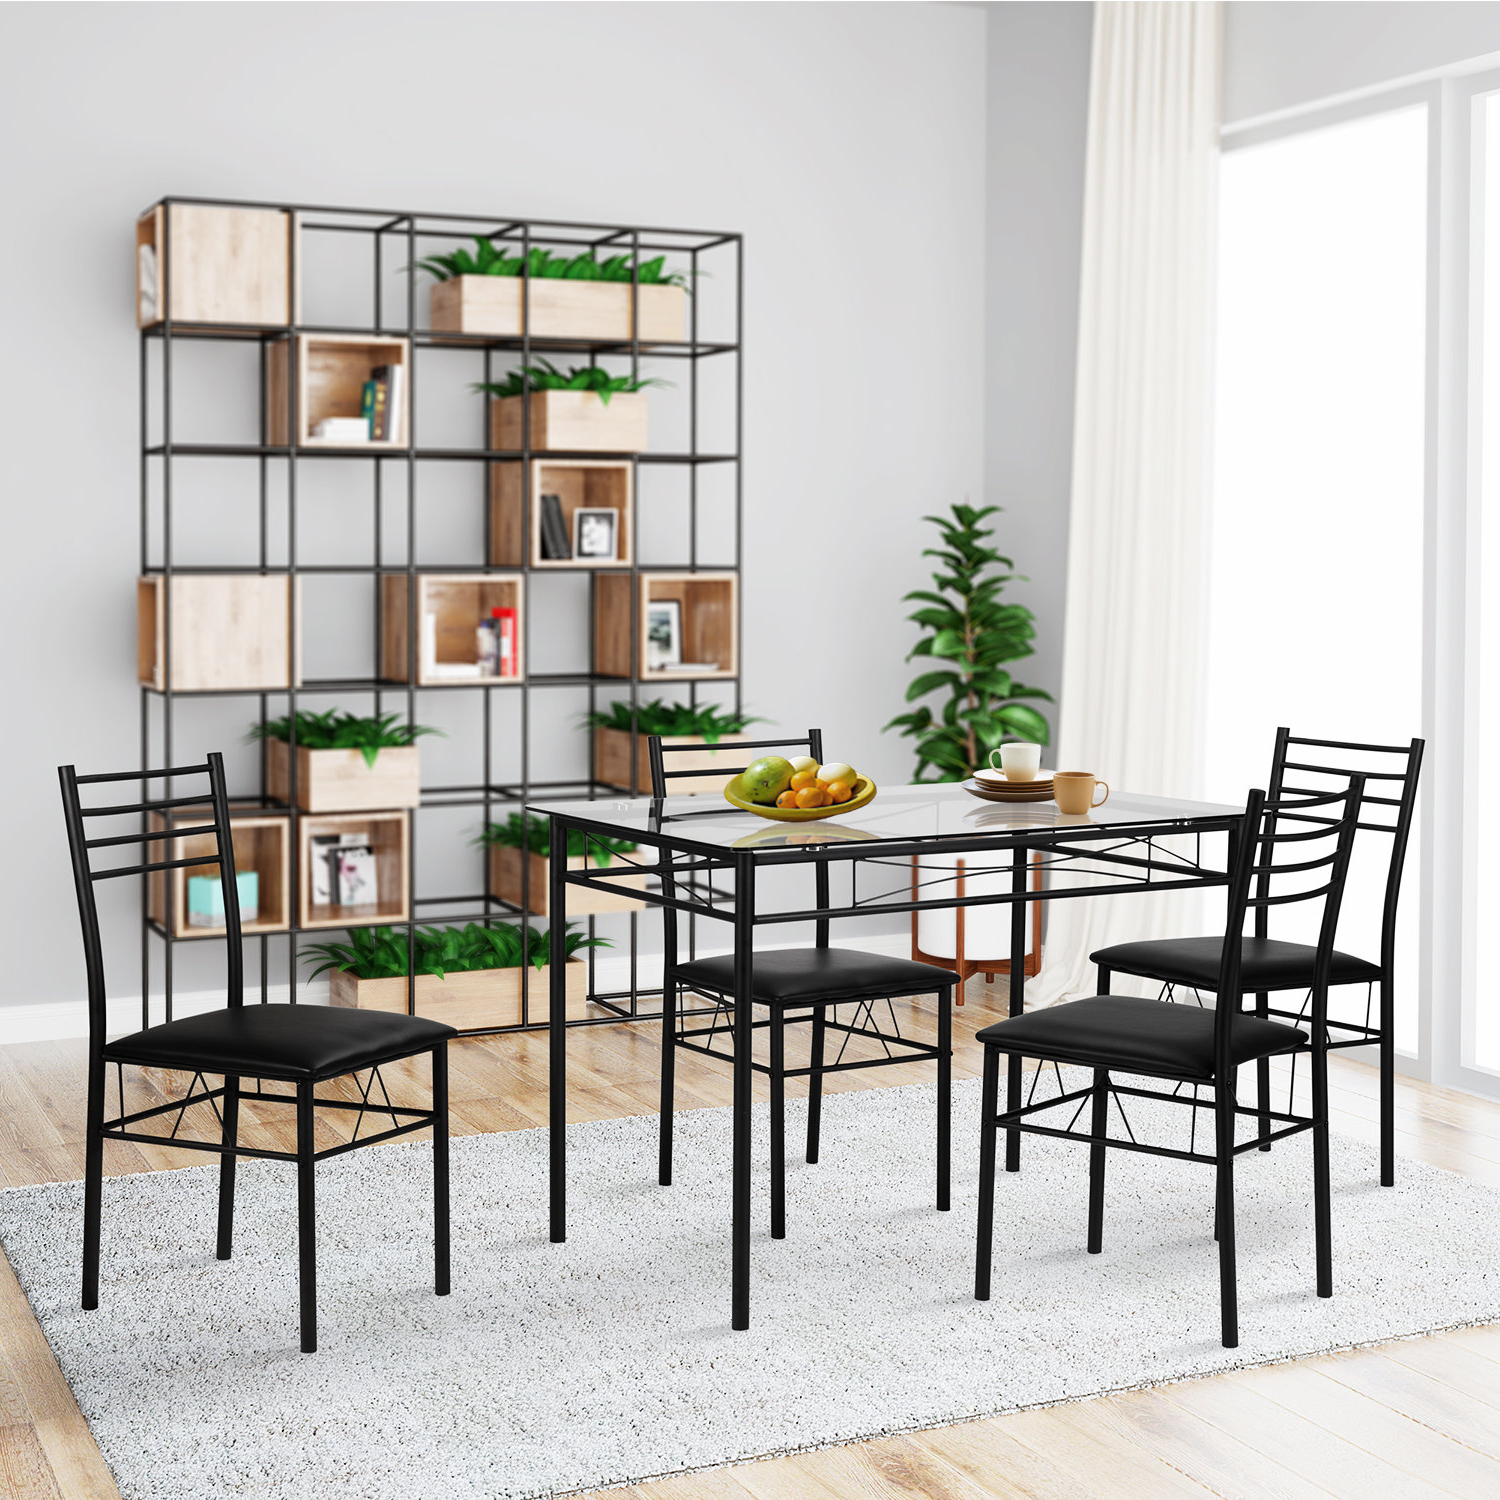 5 Piece Breakfast Nook Dining Sets With Regard To Well Known Ebern Designs Lightle 5 Piece Breakfast Nook Dining Set (View 24 of 25)